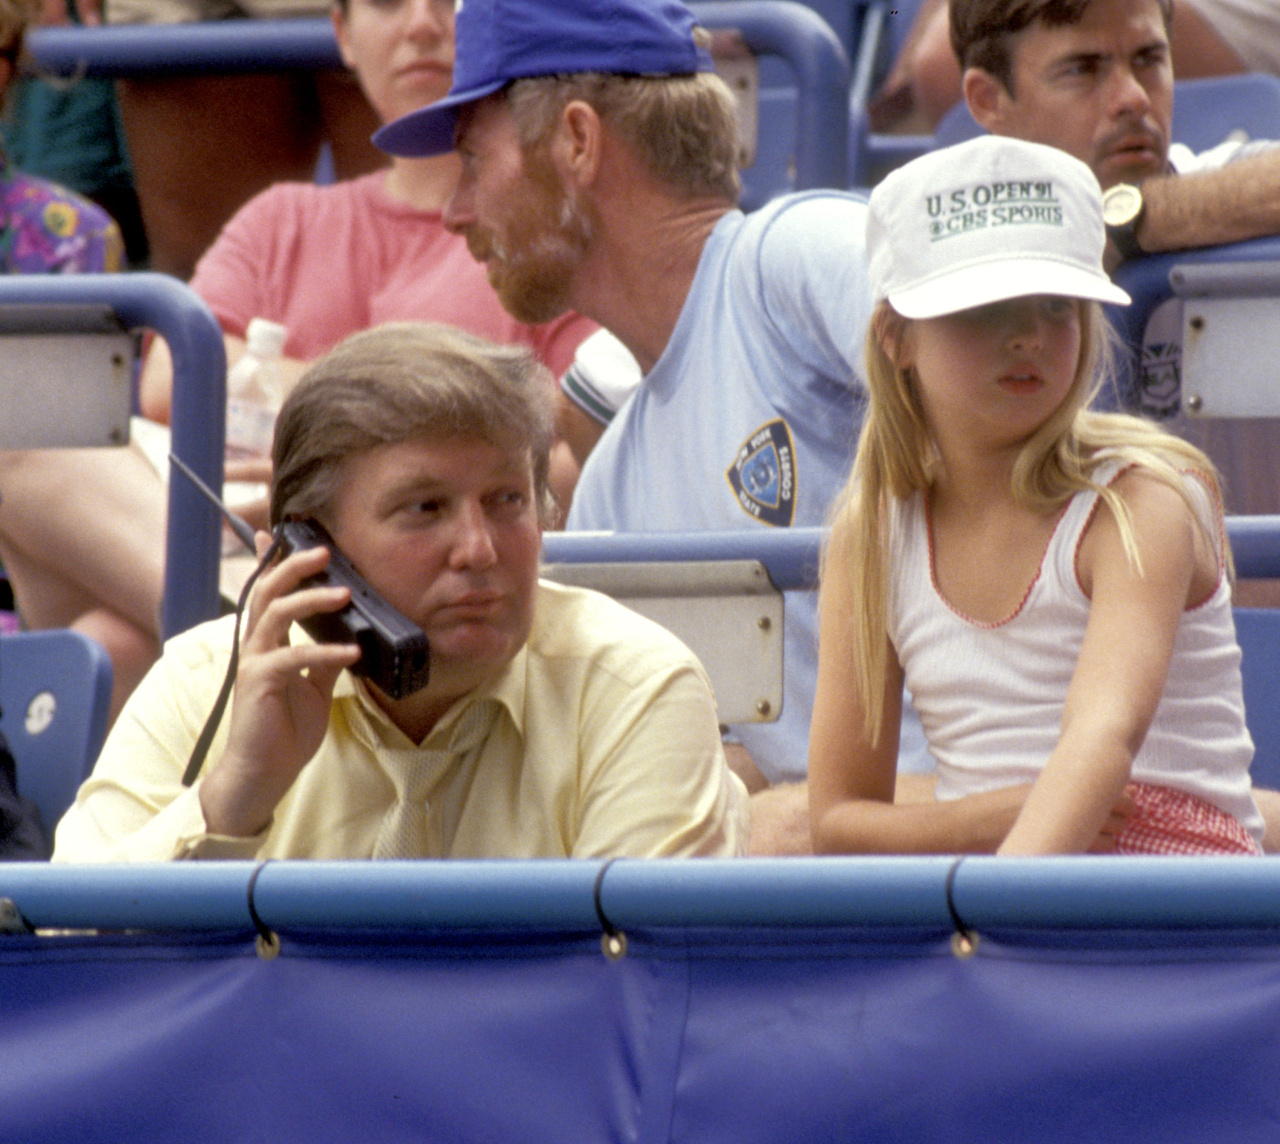 Ivanka and Donald Attend U. S. Open Tennis Championship